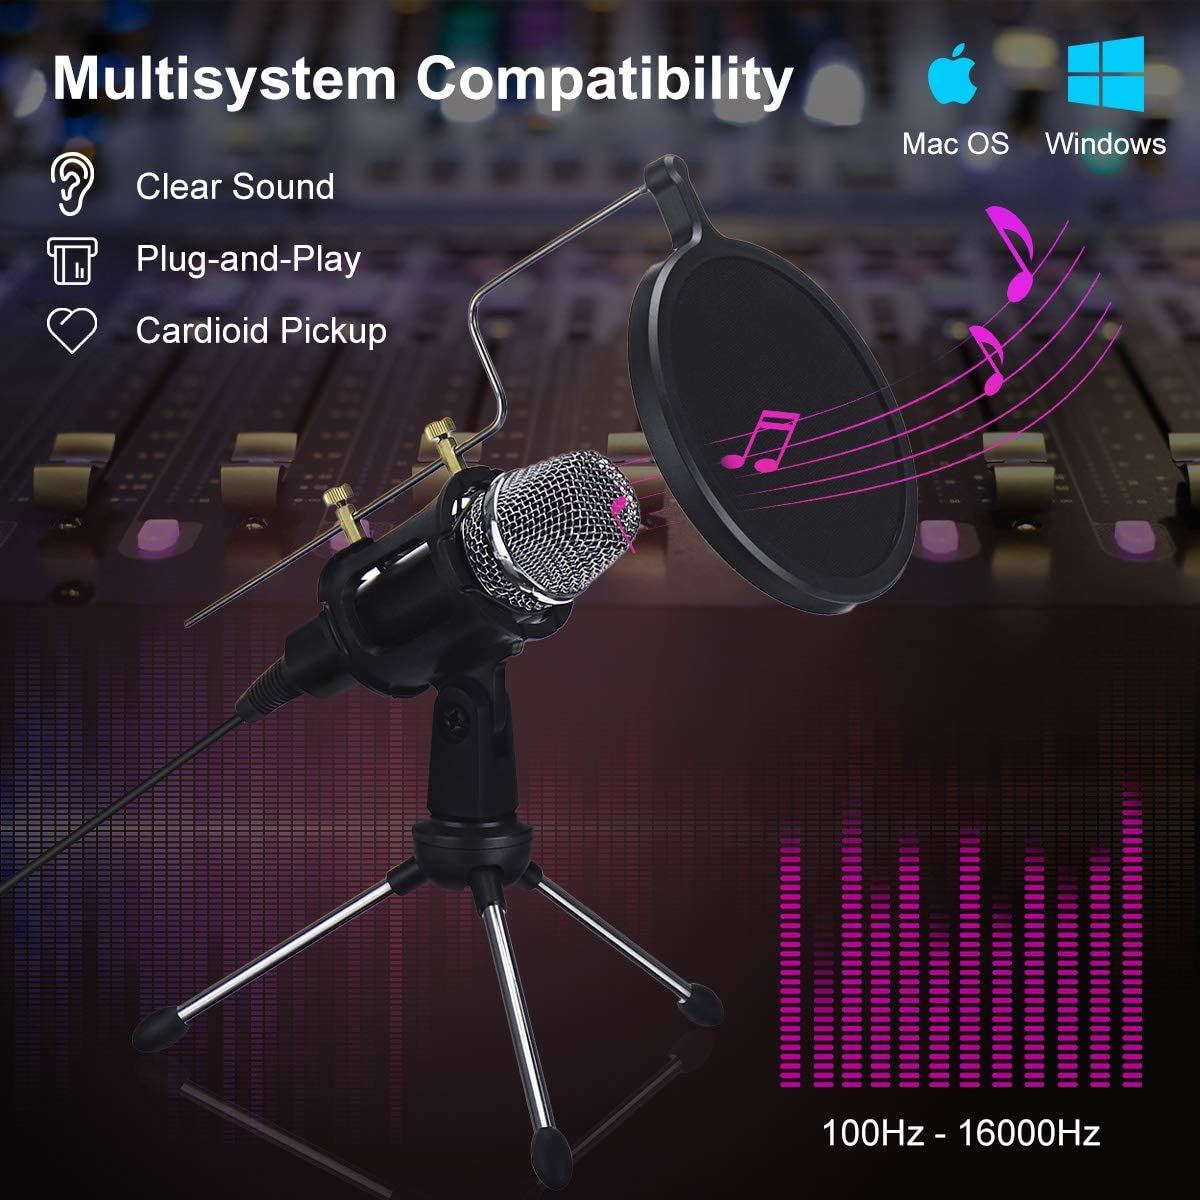 Podcasting USB for YouTube Condenser Microphone Games Computer Microphone Dual-Layer Acoustic Filter,Professional Sound Chipset NASUM USB Microphone Google Search Skype Facebook